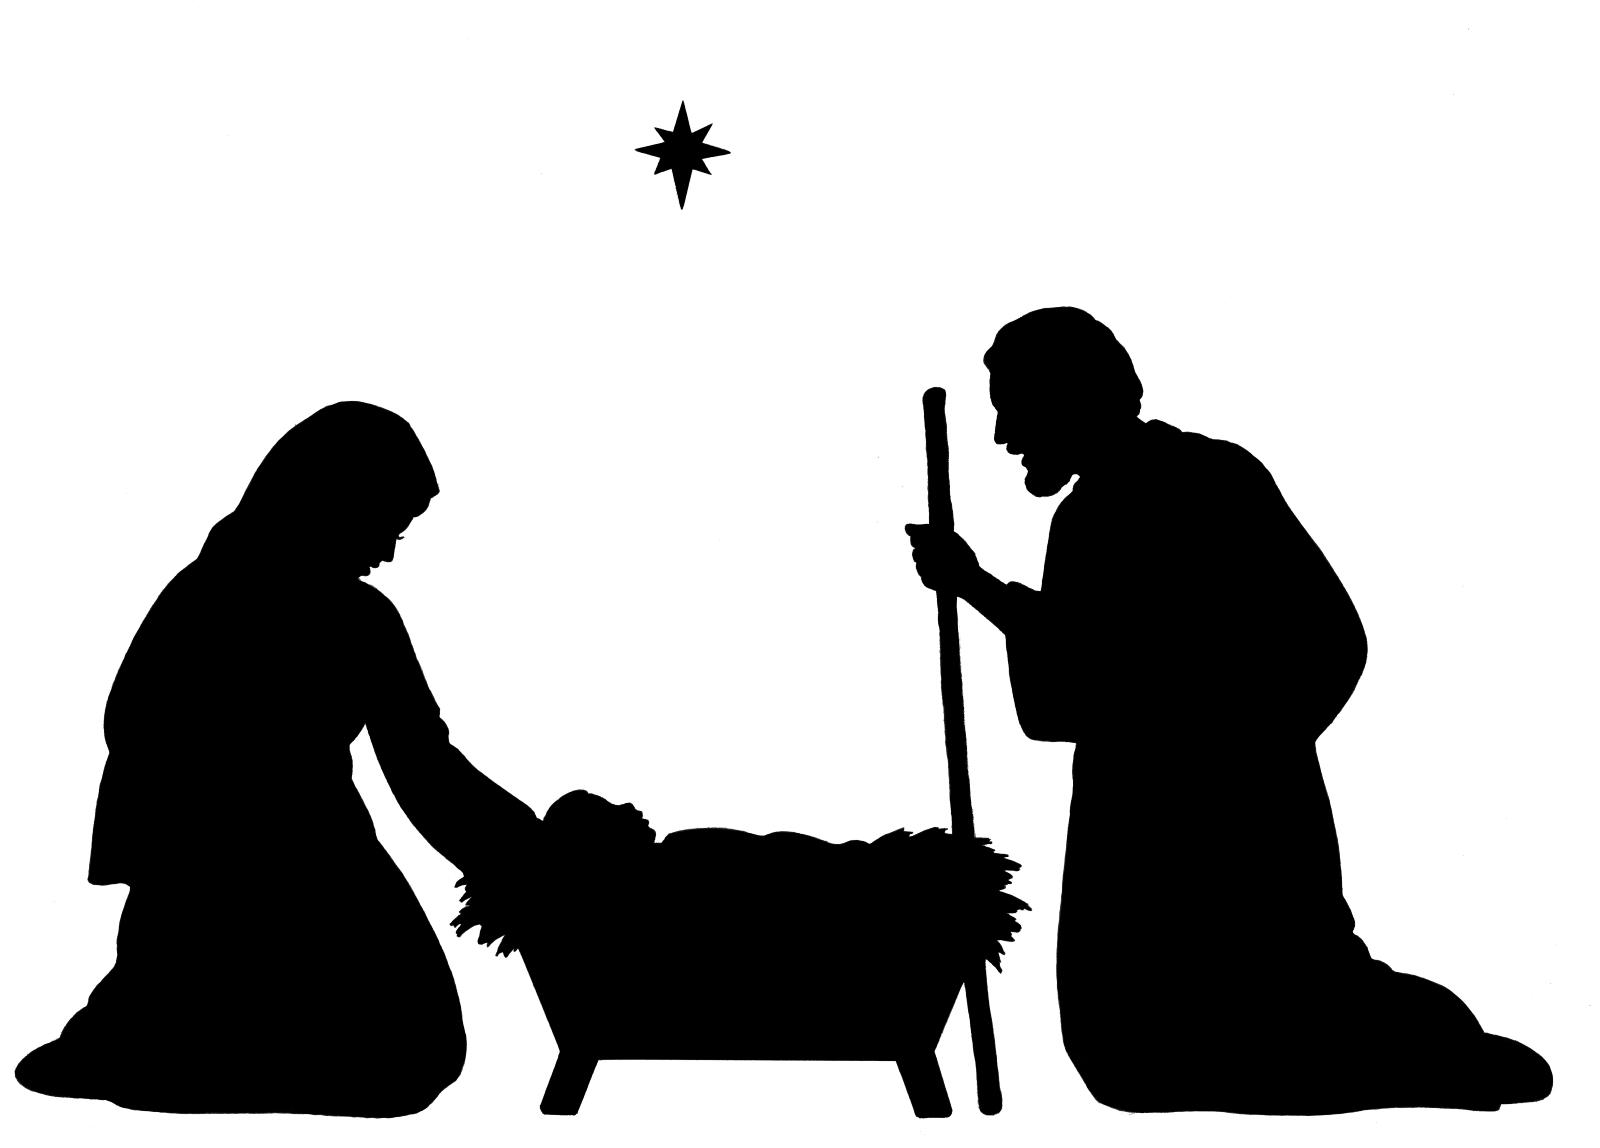 free nativity clipart silhouette at getdrawings com free for rh getdrawings com nativity images free clipart nativity images free clipart